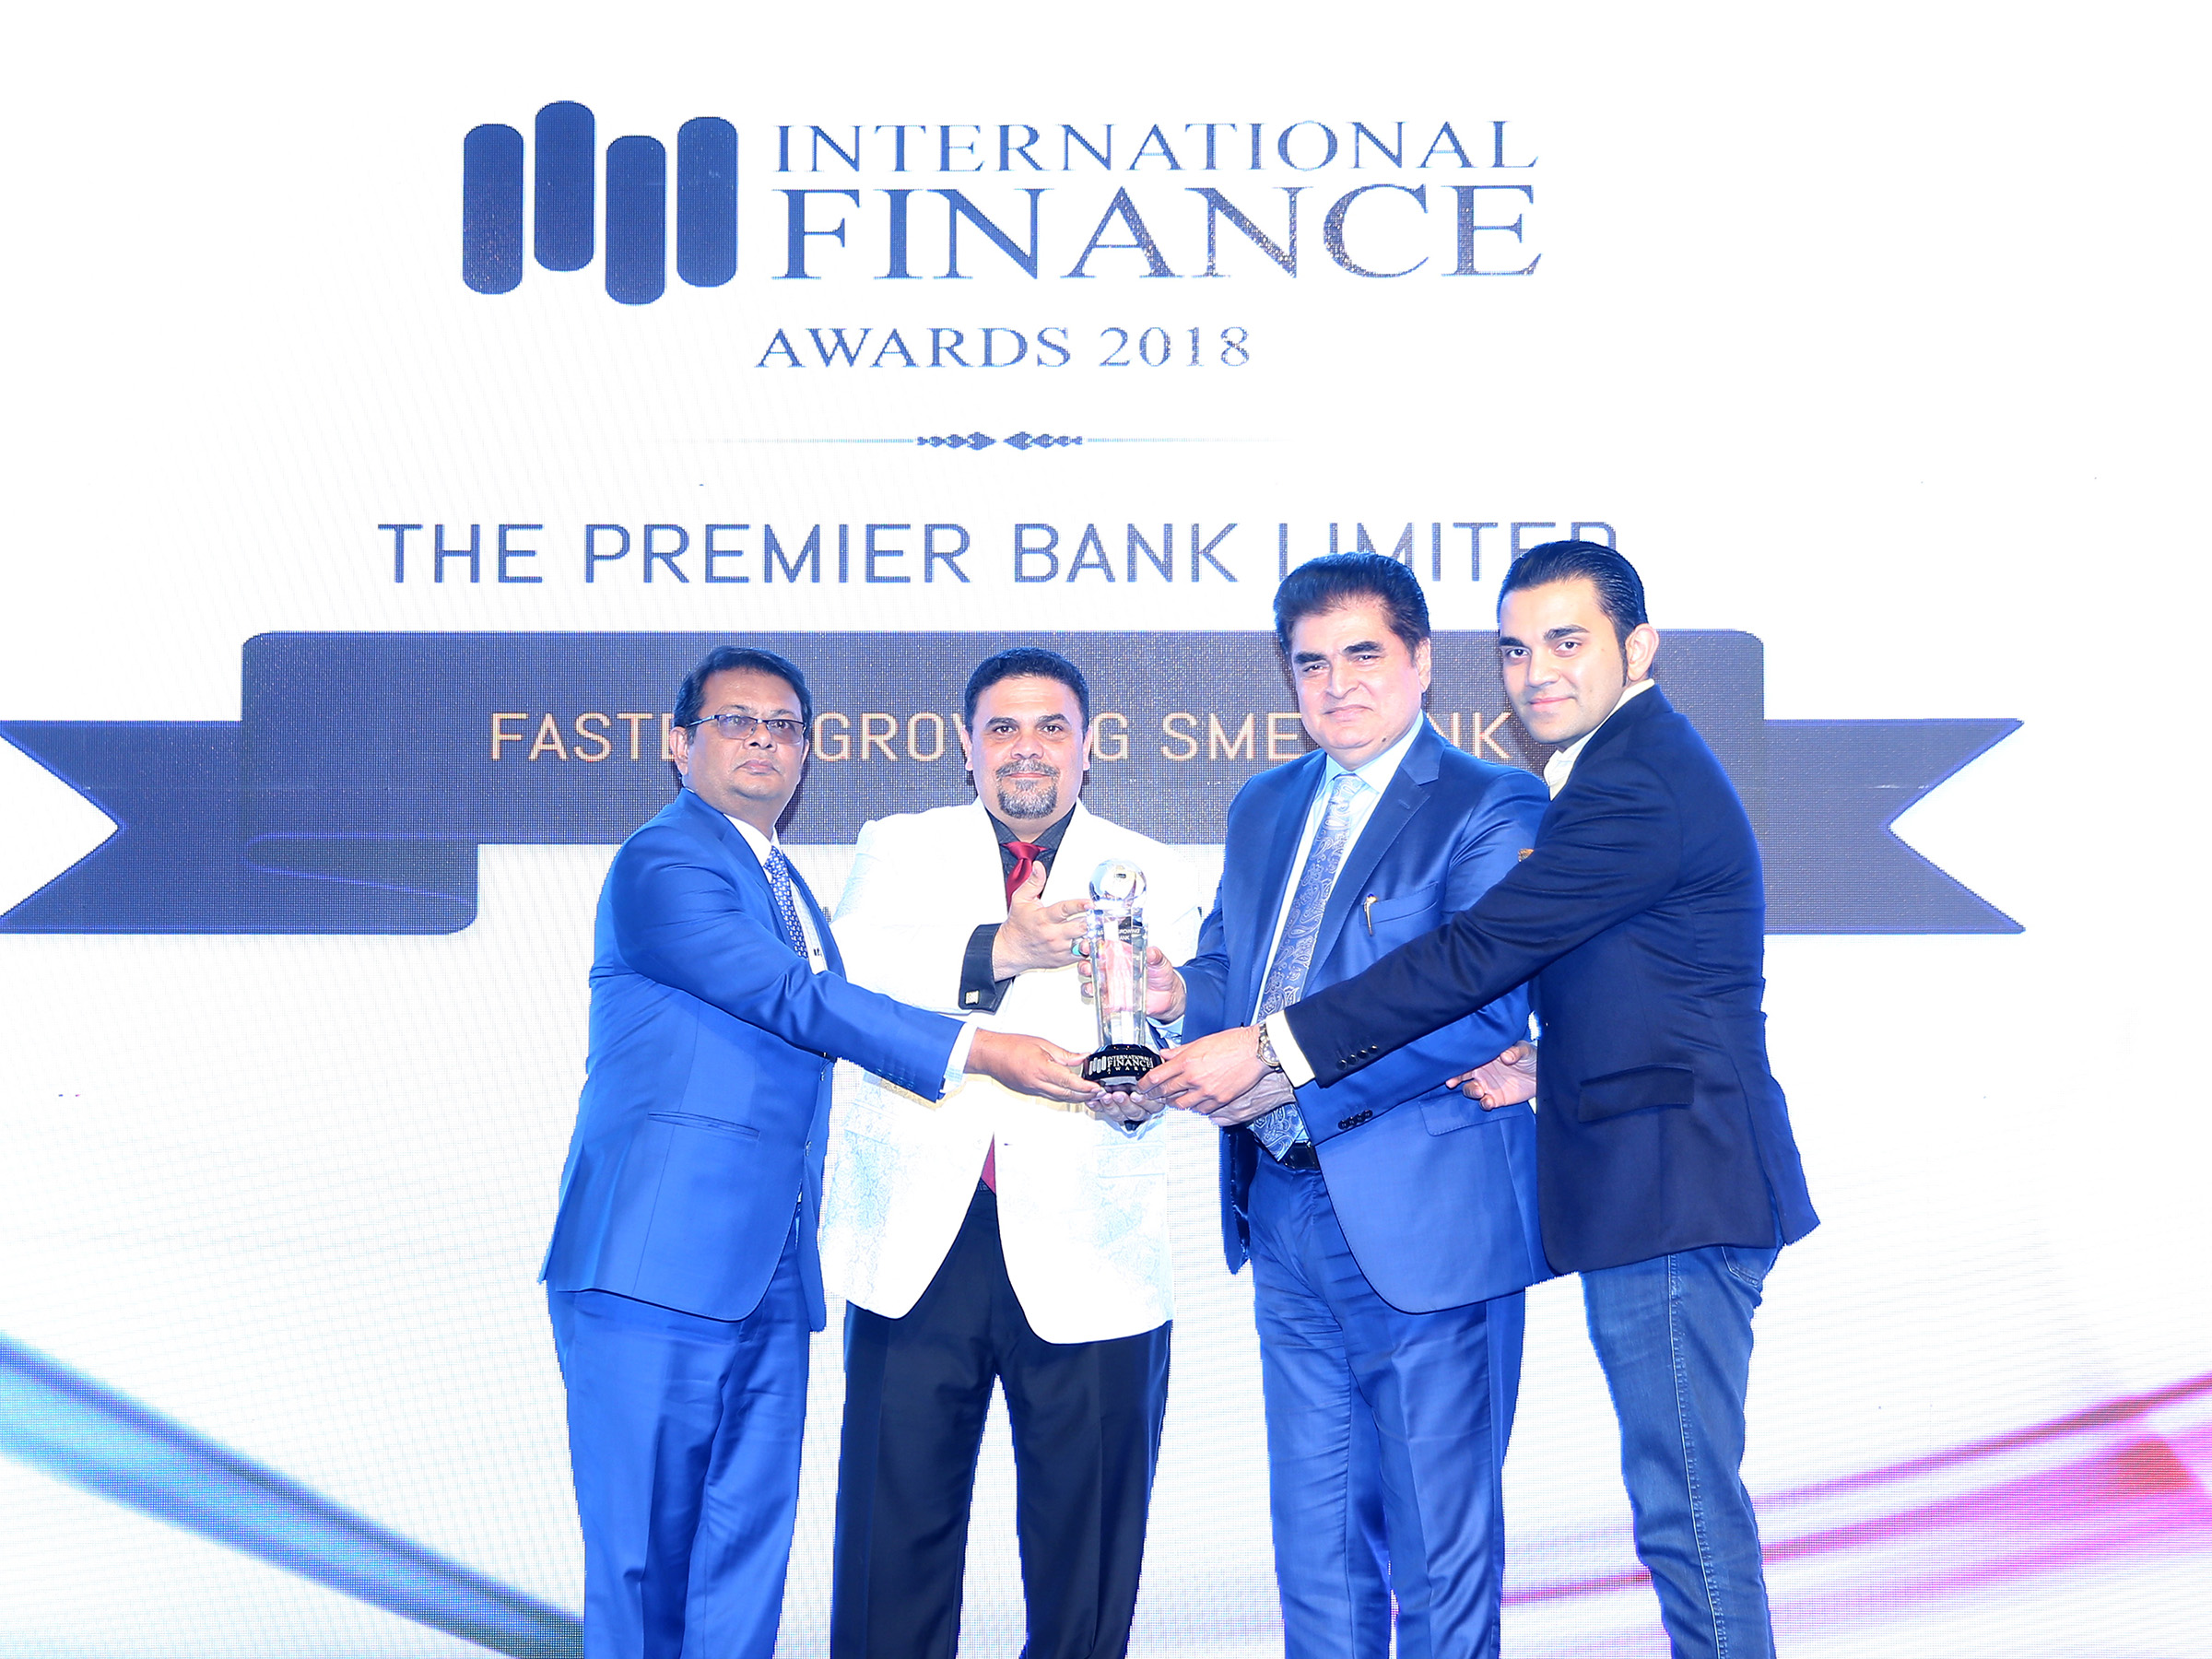 The-Premier-Bank-Ltd.-wins-Fastest-Growing-SME-Bank-2018-Award